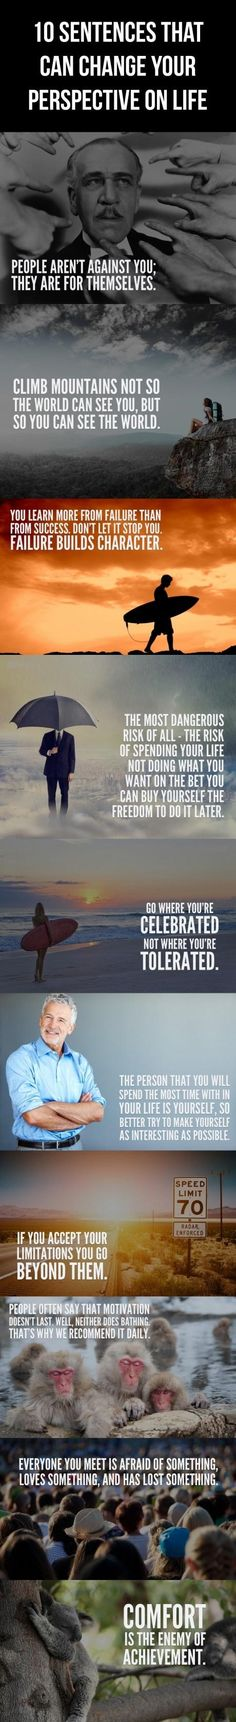 10 Sentences That Can Change Your Perspective On Life - qm stories & news.